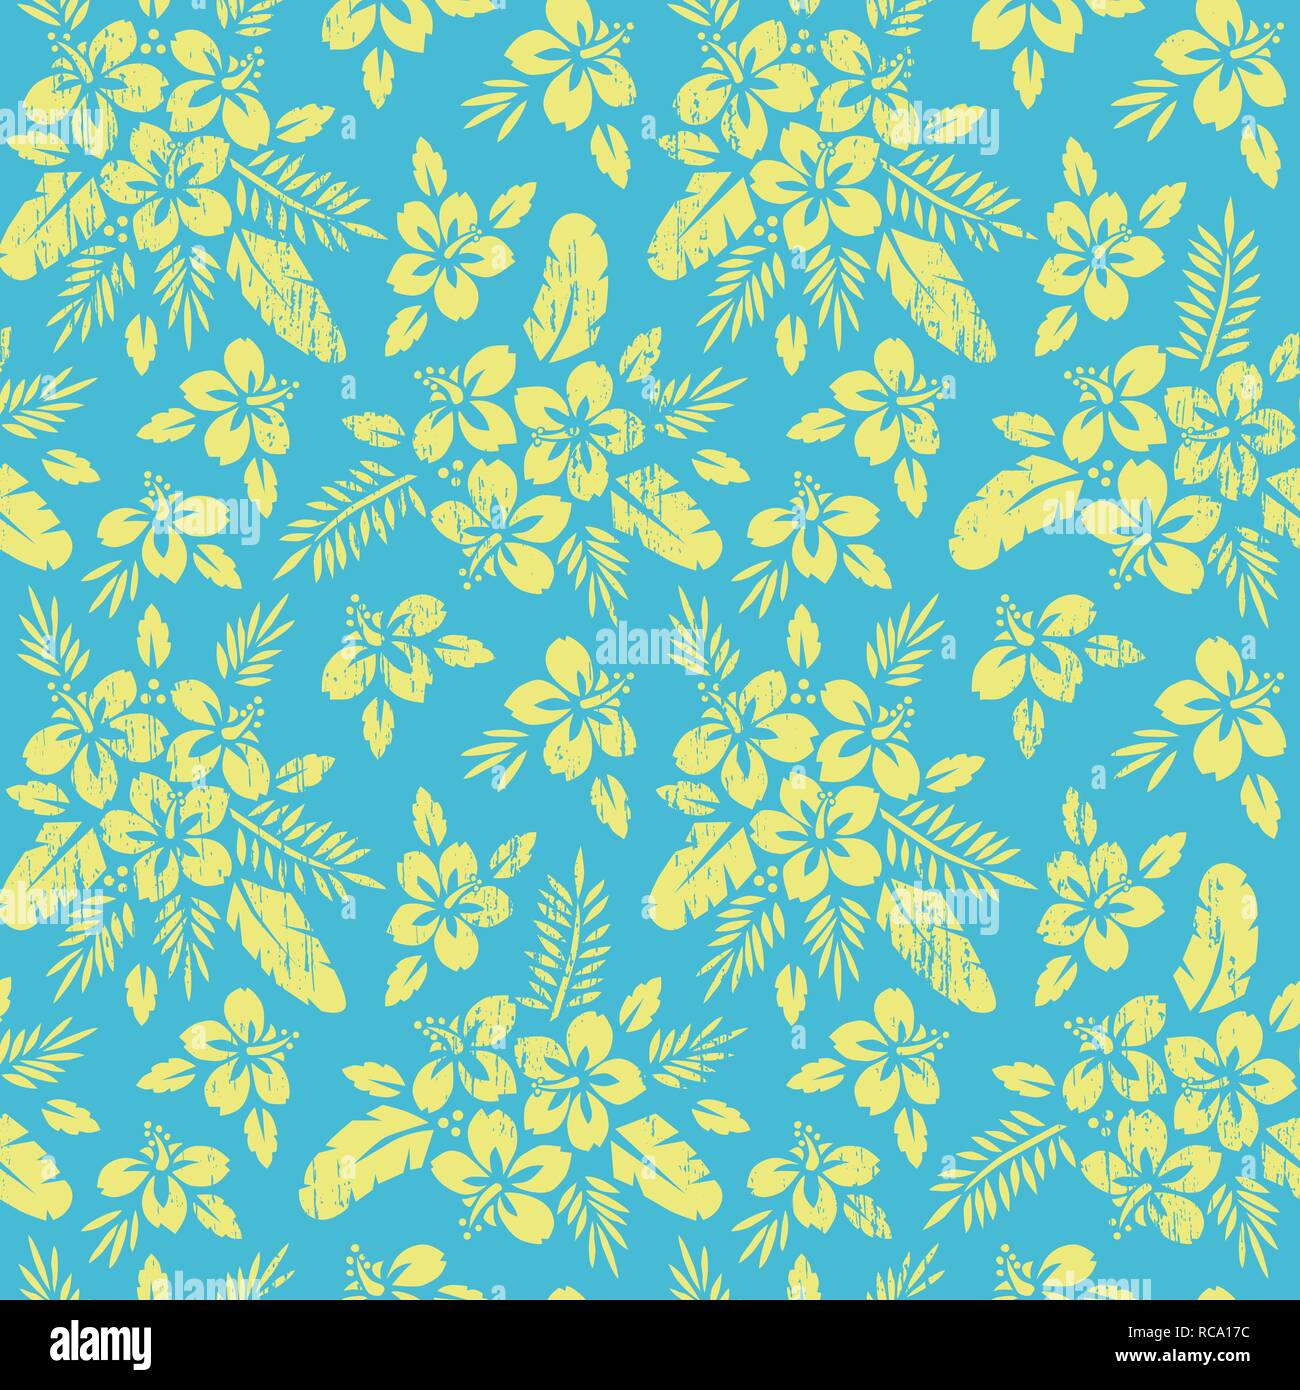 Monochrome Yellow Bold Exotic Foliage, Hibiscus Flowers Vector Seamless Pattern. Oversize Bright Lush Tropical Banana Palm Leaves and Blooms on Blue B - Stock Vector